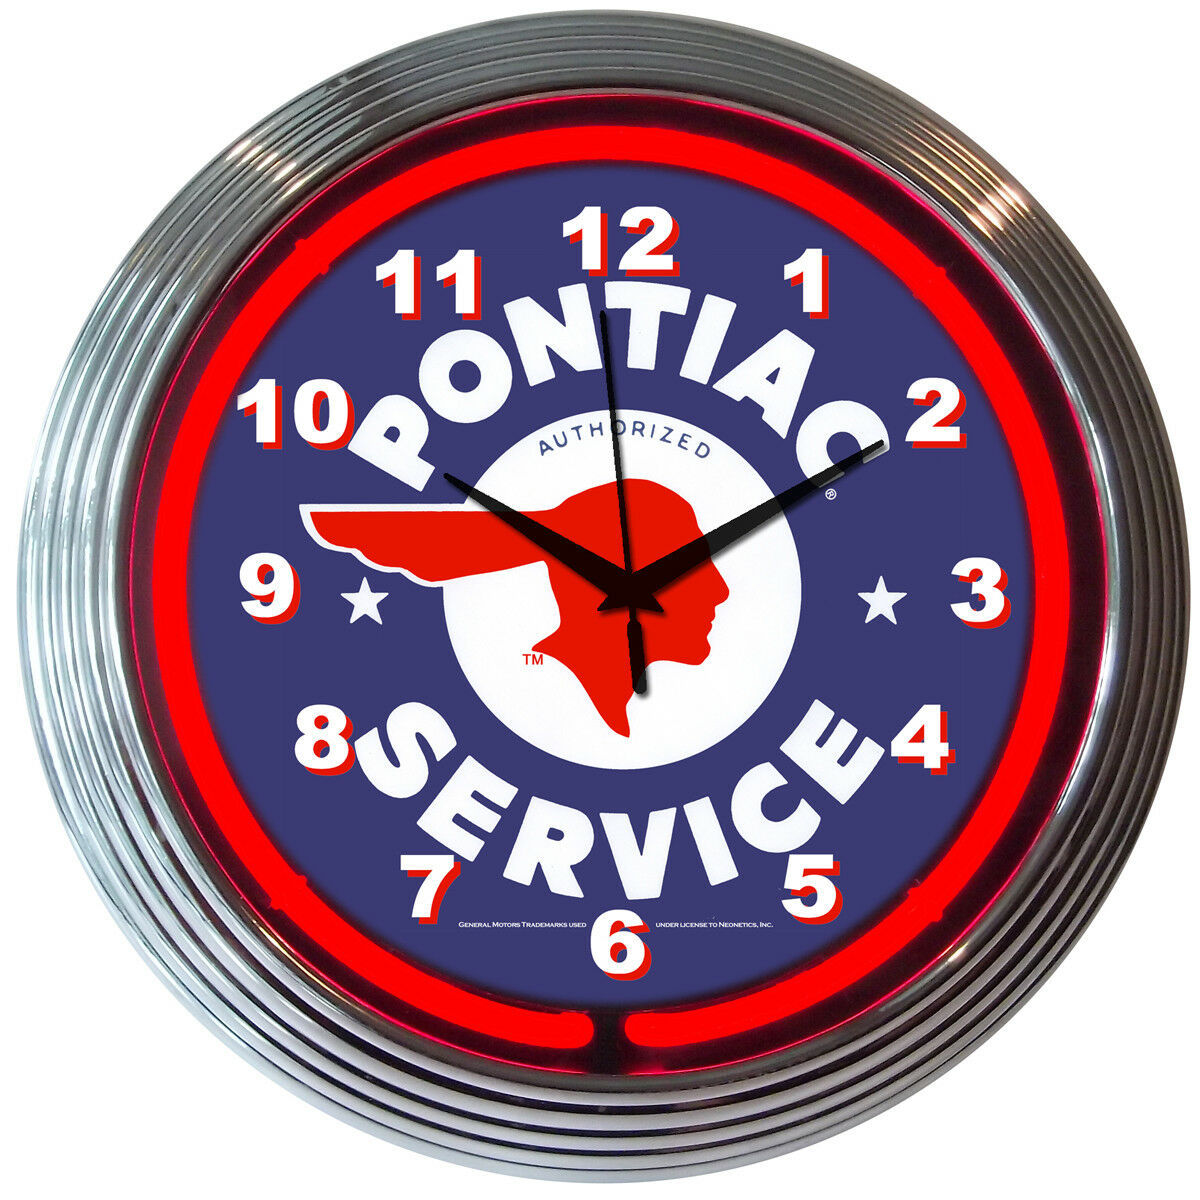 Pontiac Service Auto Neon Clock Blue Red White 15 Inch Office Game Room Garage